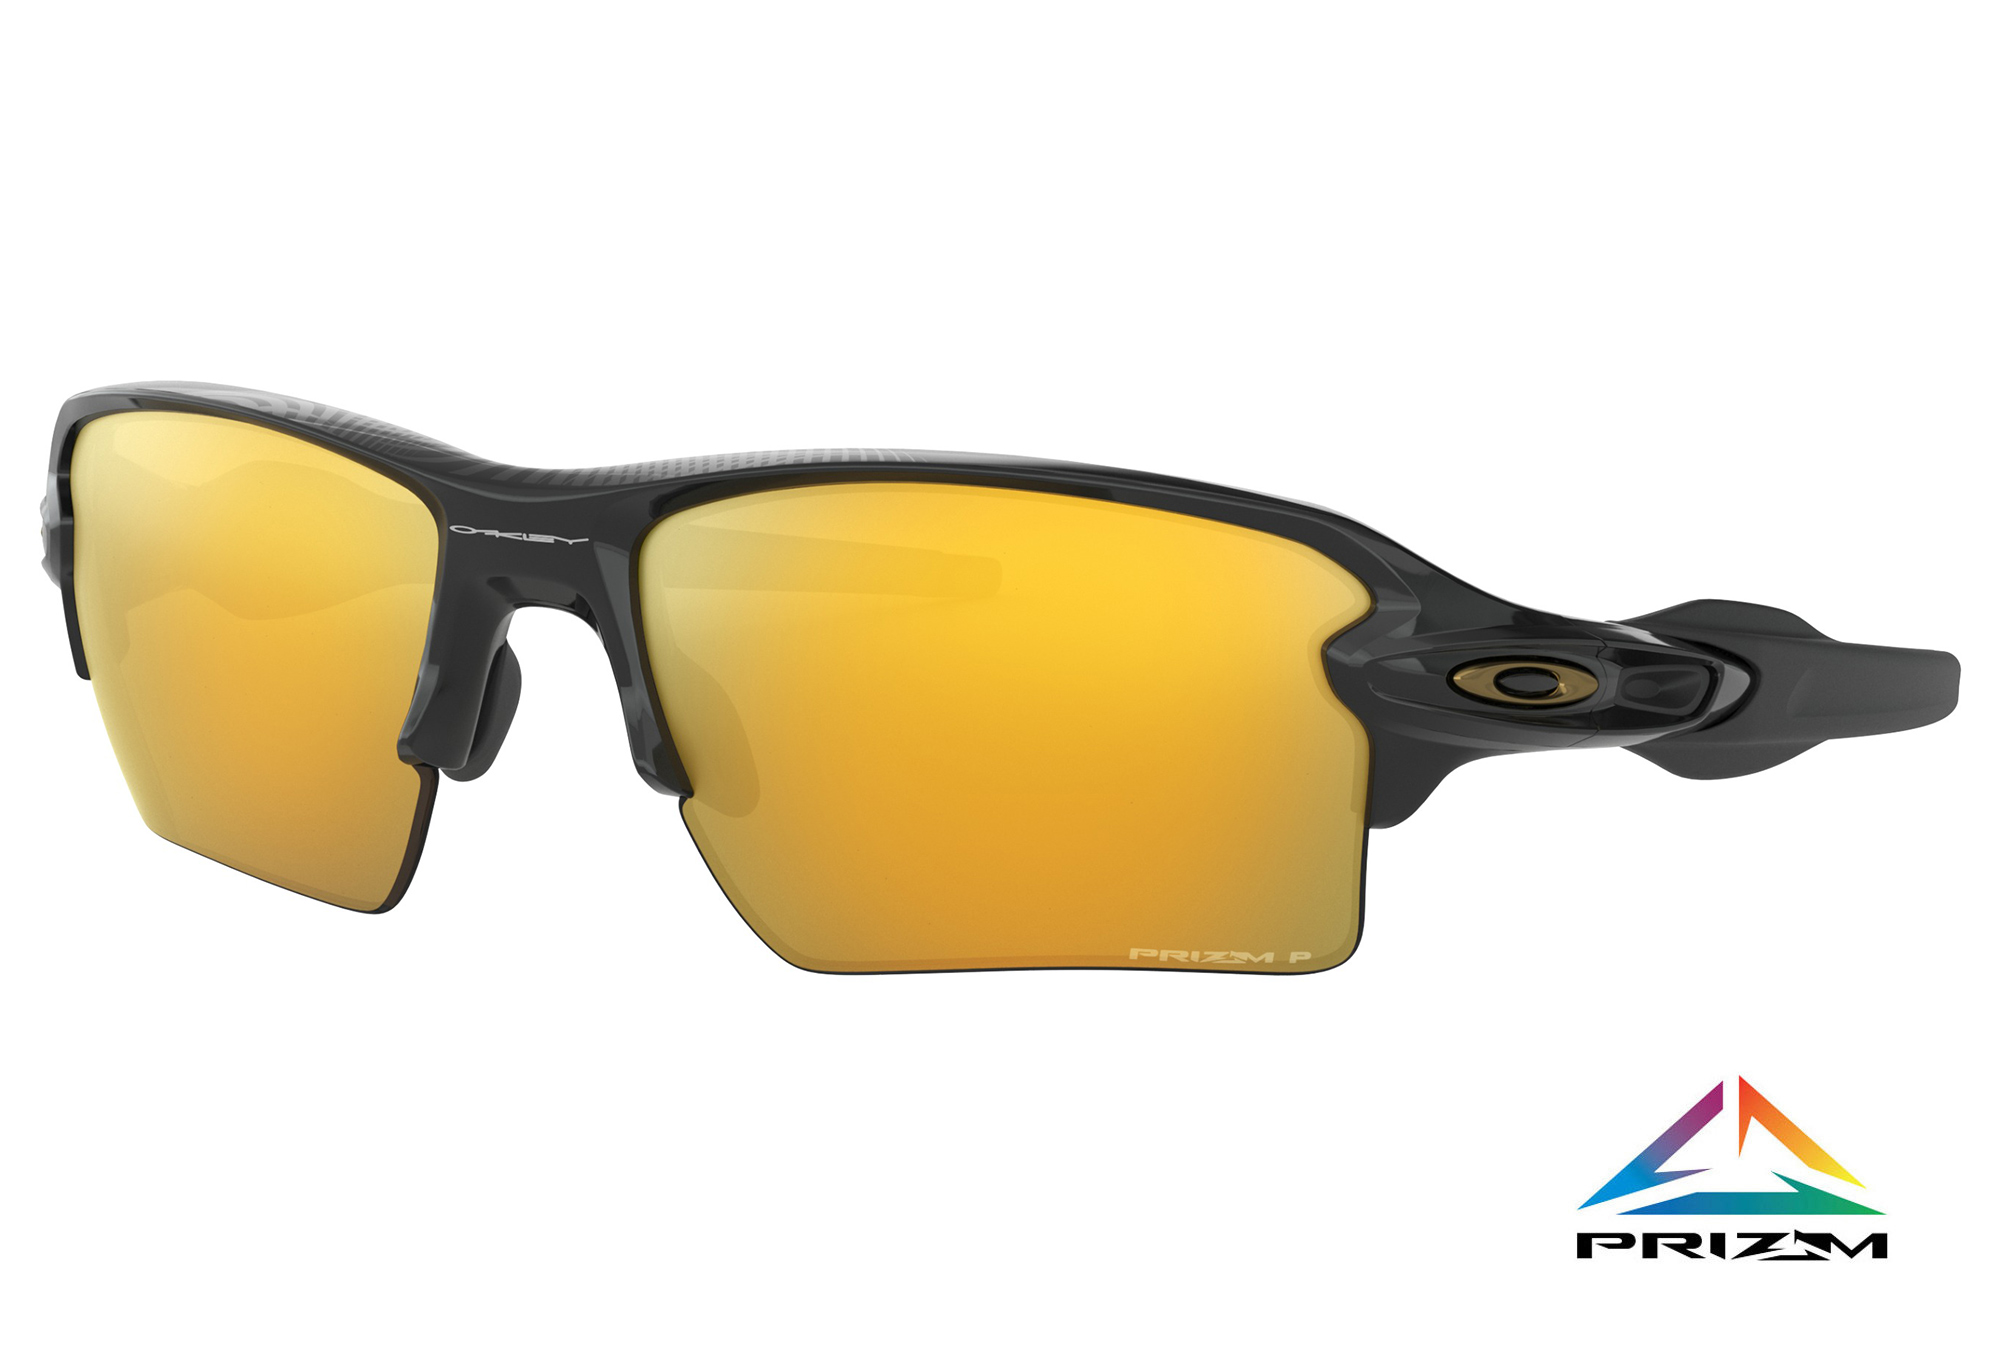 25ee478c61 Oakley Flak 2.0 XL Midnight Collection Glasses Polished Black   Prizm 24k  Polarized OO9188-9559